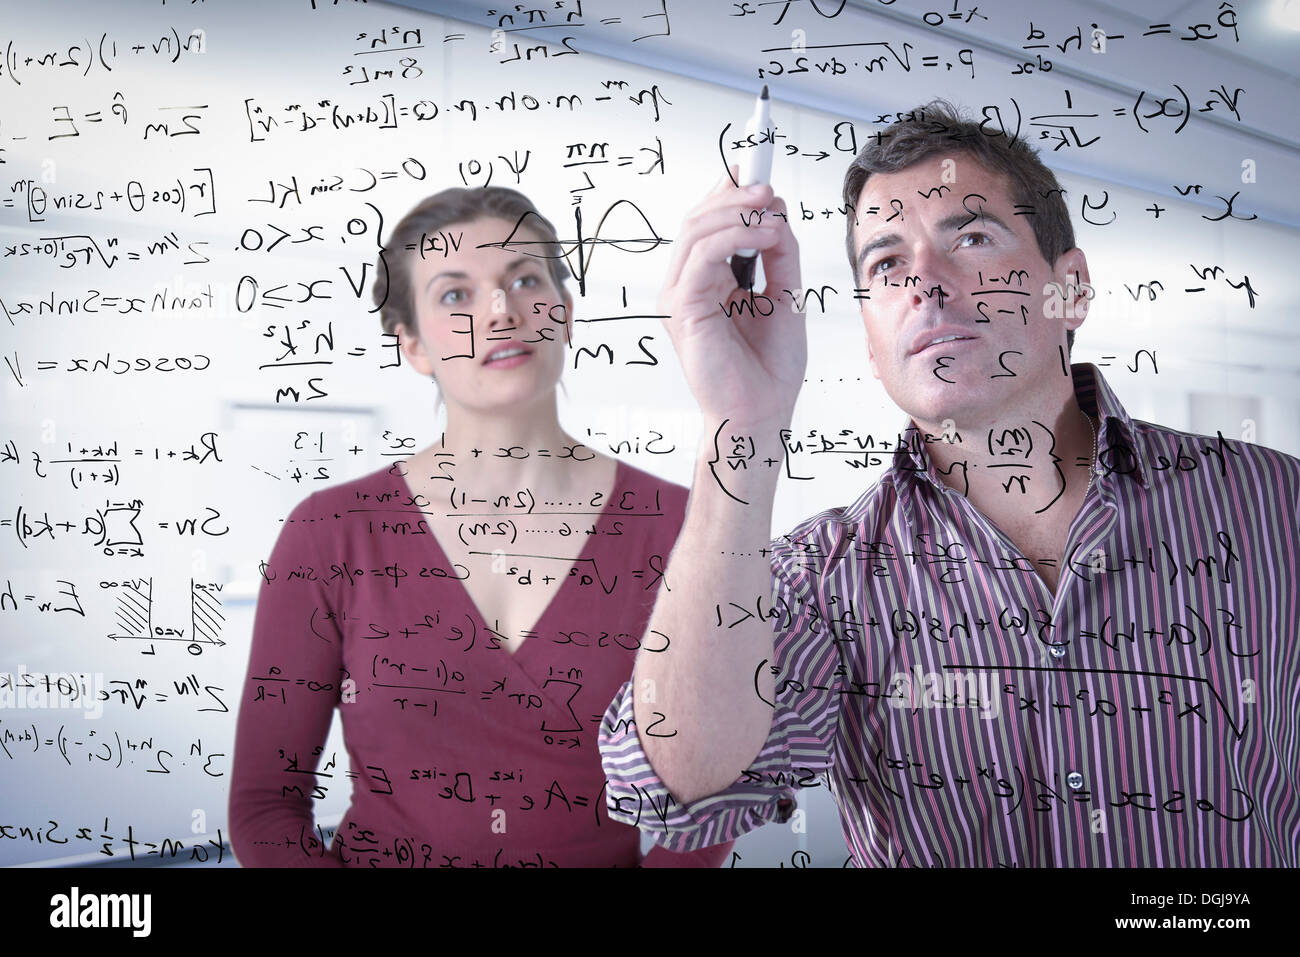 Mathematicians writing complex scientific equations on screen - Stock Image